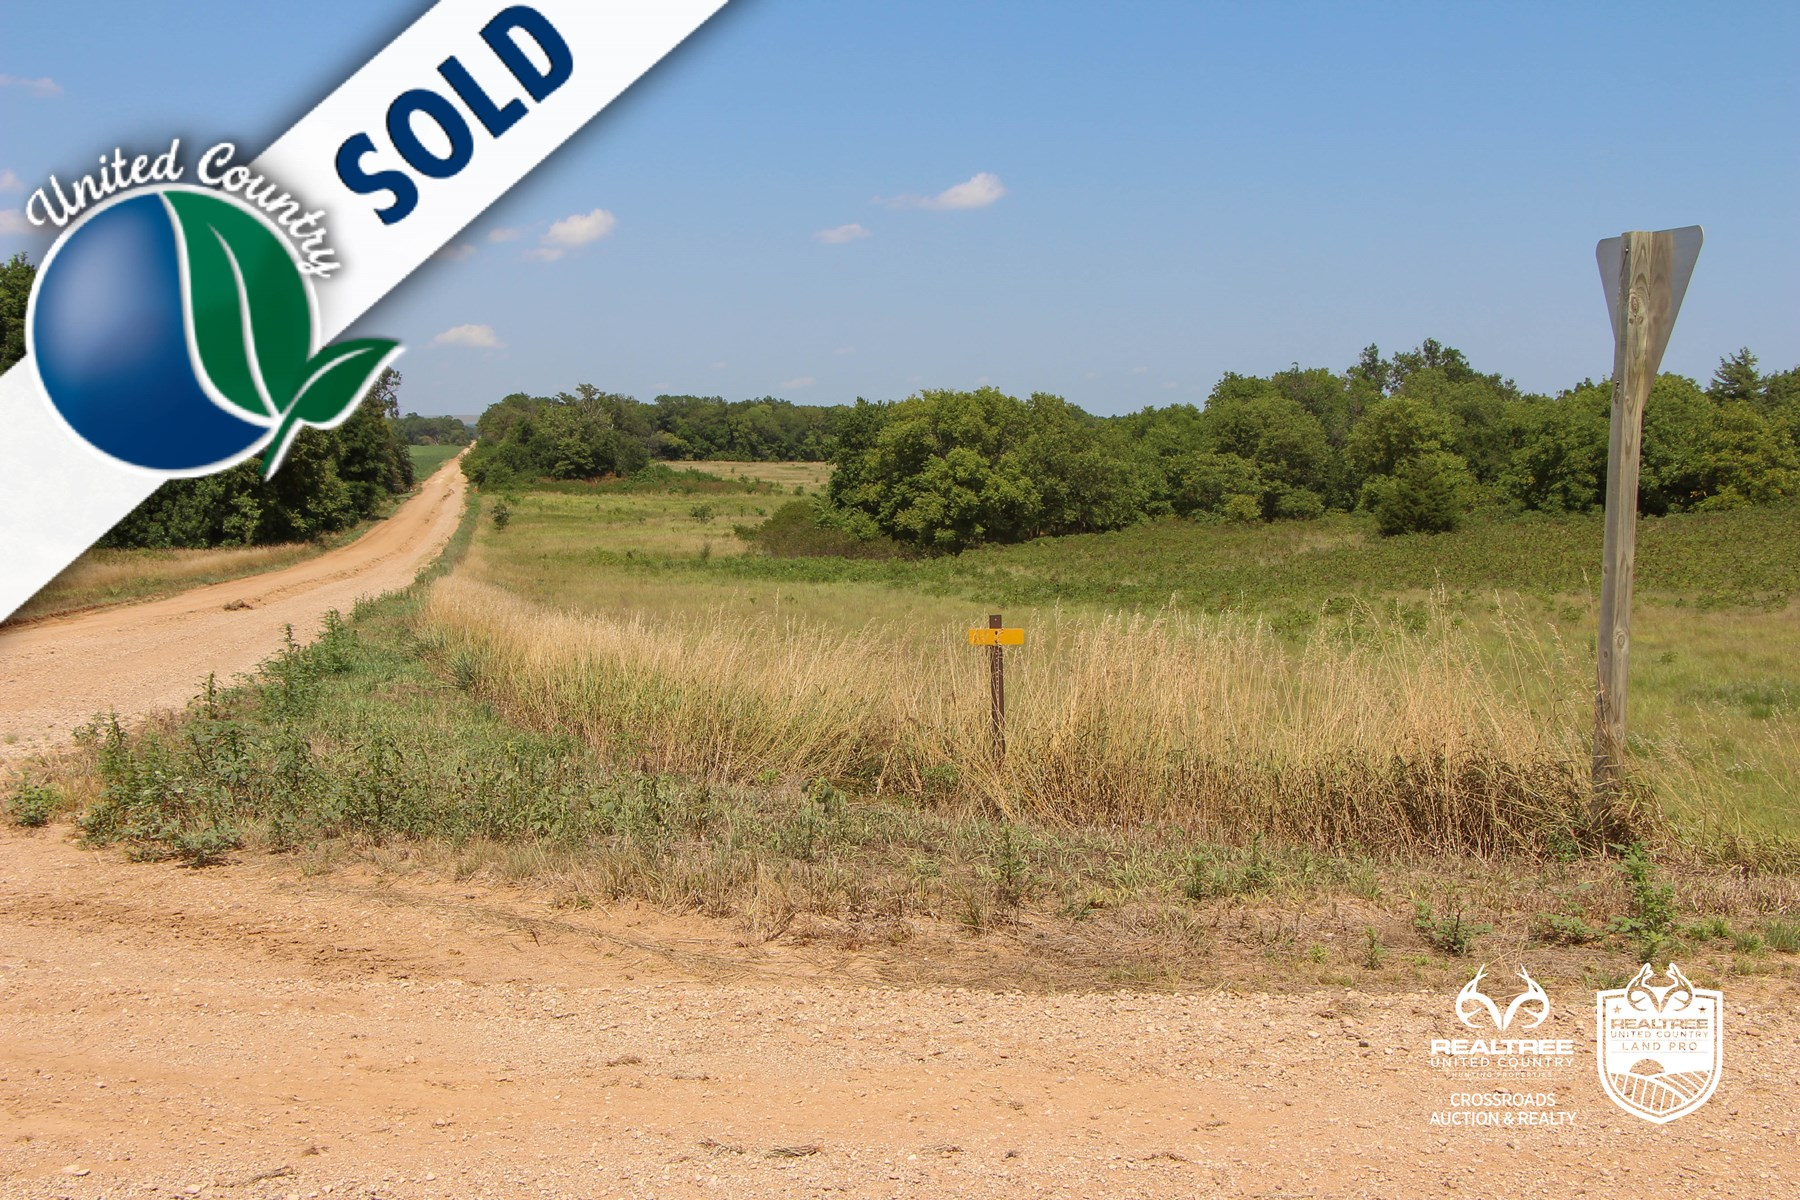 Hunting / CRP Land For Sale in Lincoln County Kansas